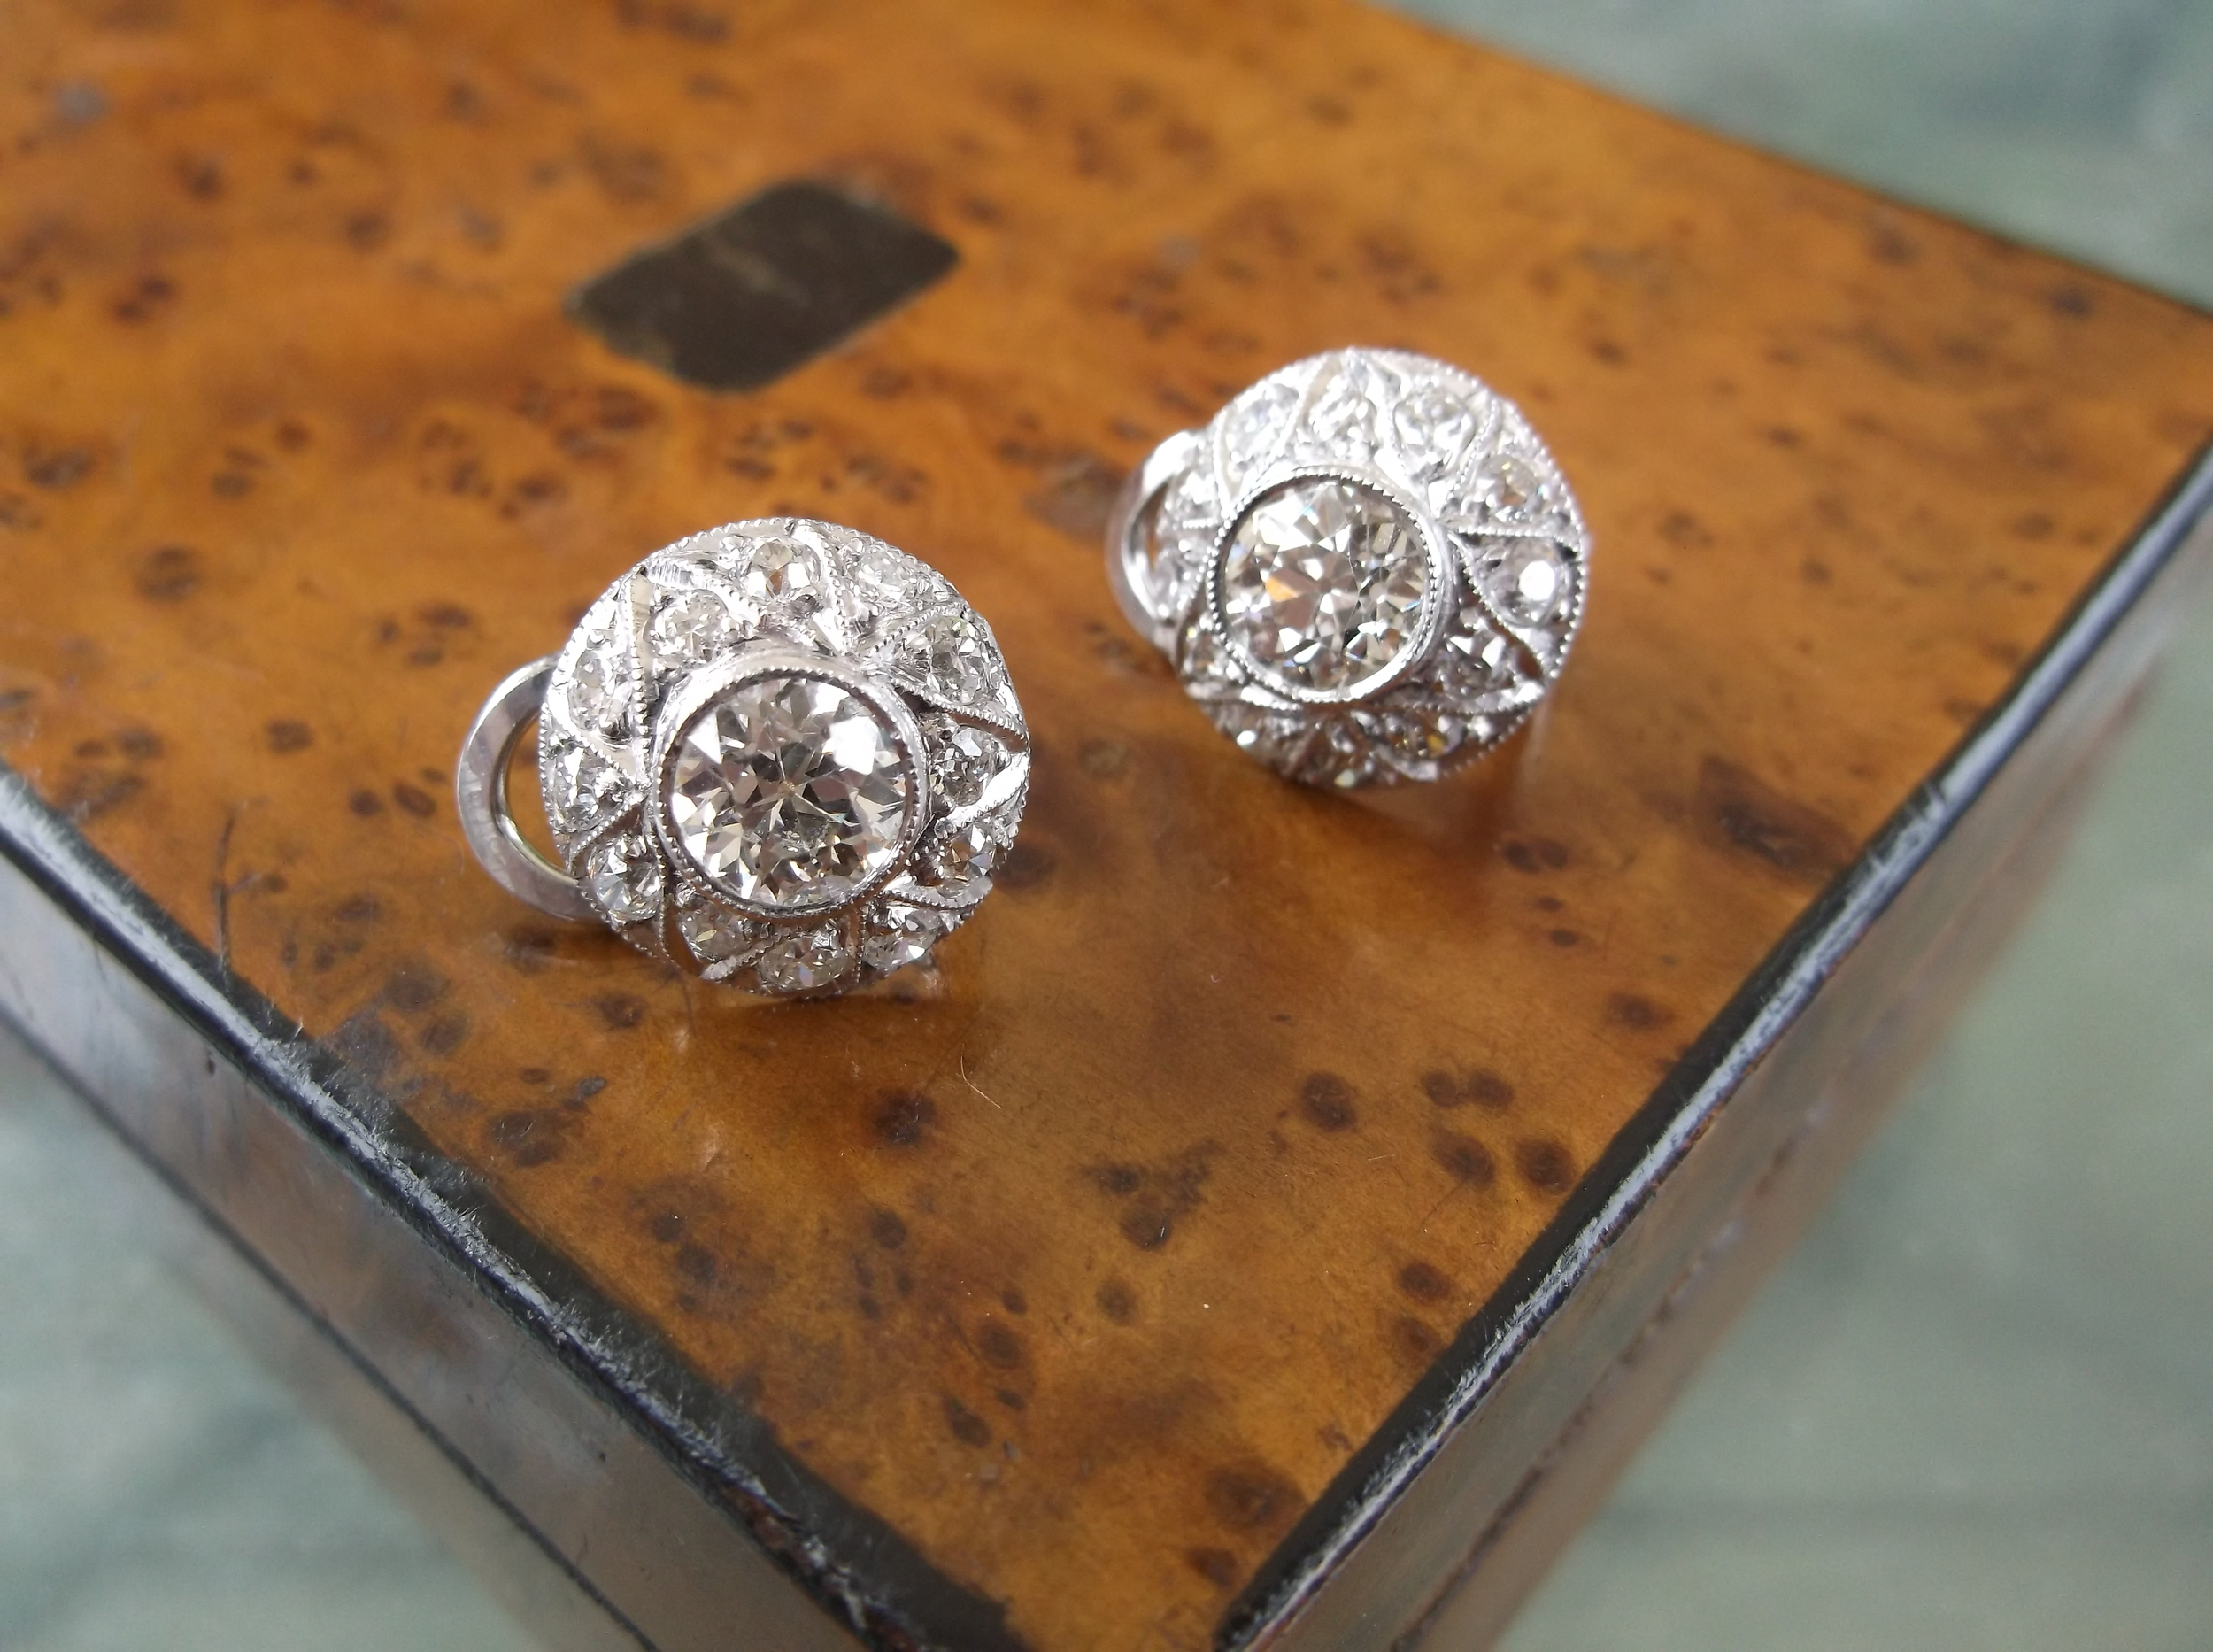 SOLD - Gorgeous Art Deco diamond and platinum earrings with a 0.90 carat Old European cut diamond in the center of each.